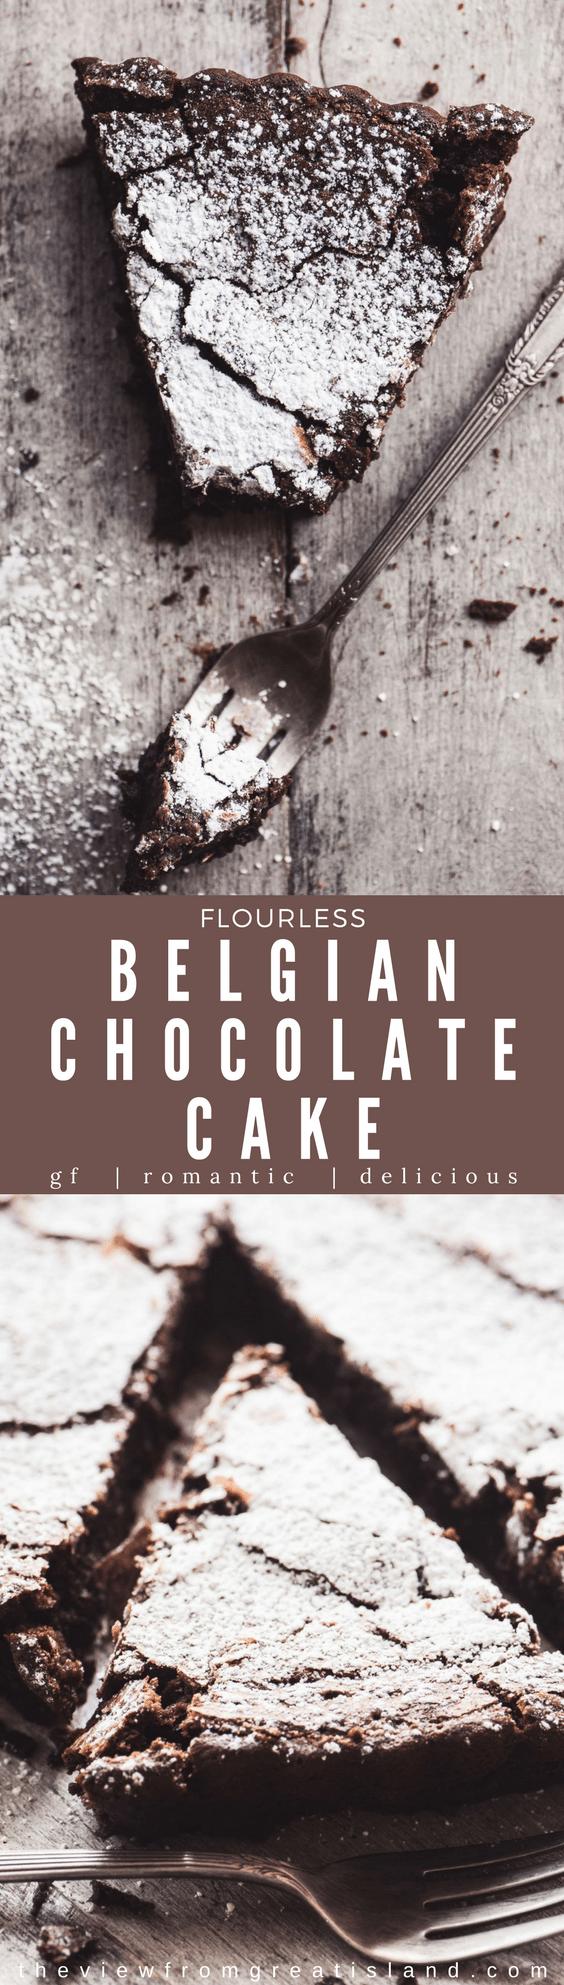 This Flourless Belgian Chocolate Cake is a chocolate lovers dream, and everybody needs a great gluten free chocolate dessert in their recipe repertoire. This easy chocolate cake makes an elegant base for any fancy toppings you might want to add, too, from fresh berries to spiked whipped cream. #dessert #glutenfree #chocolate #cake #chocolatetart #glutenfreecake #bestflourlesschocolatecake #bestchocolatecake #darkchocolate #almondflour #belgiancake #flourlesscake